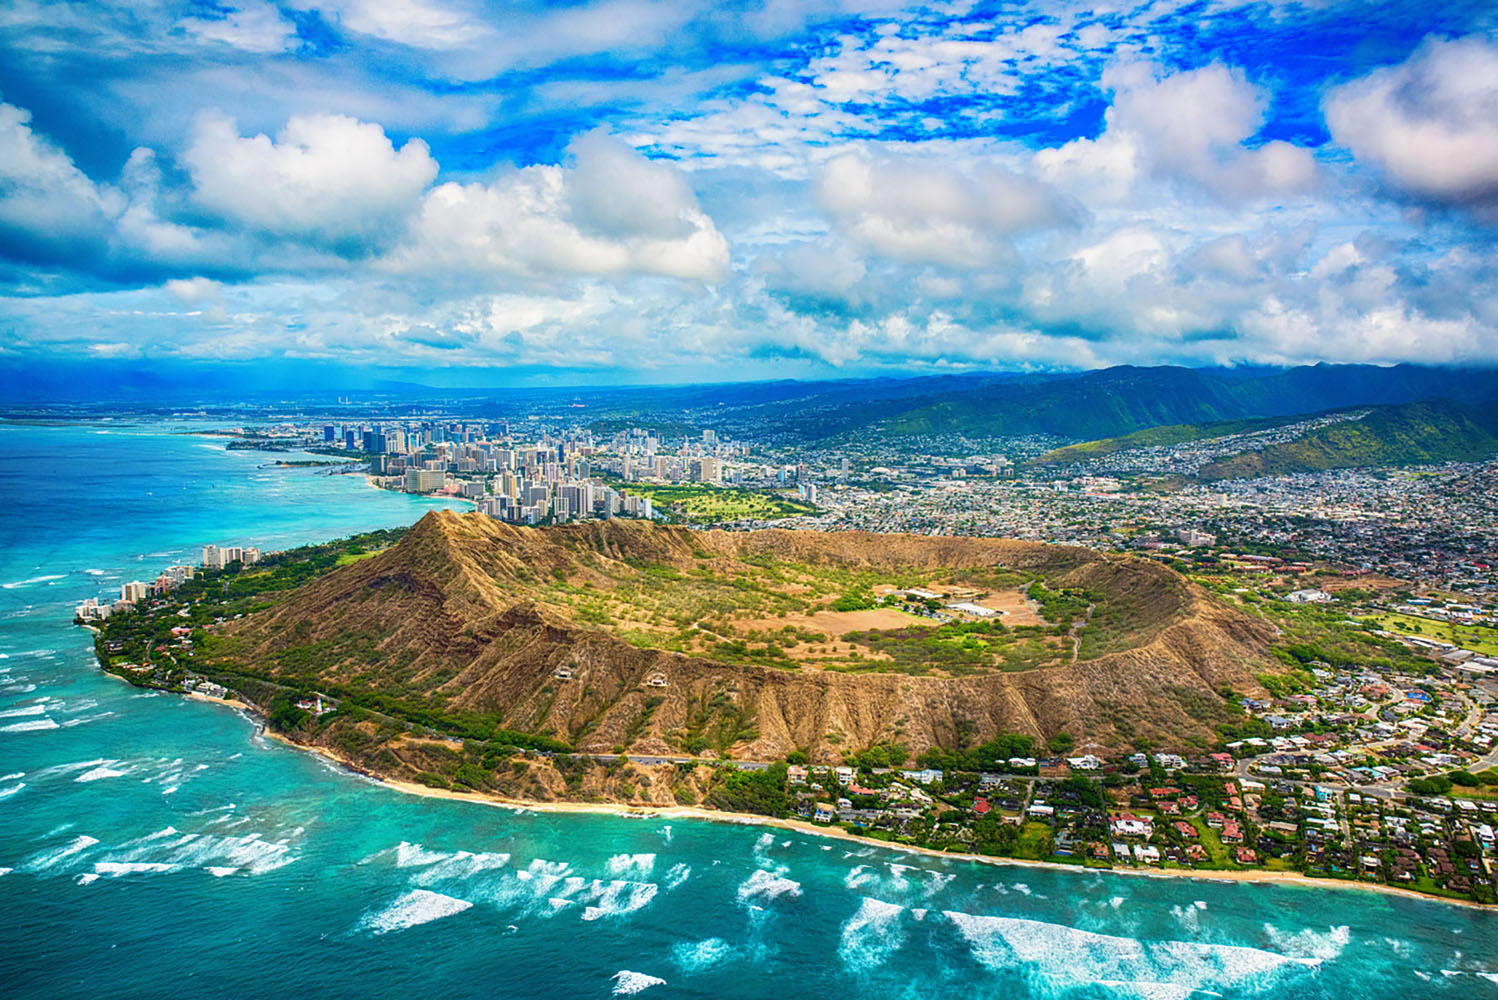 An arial view of Diamond Head State Monument near Honolulu in Hawaii